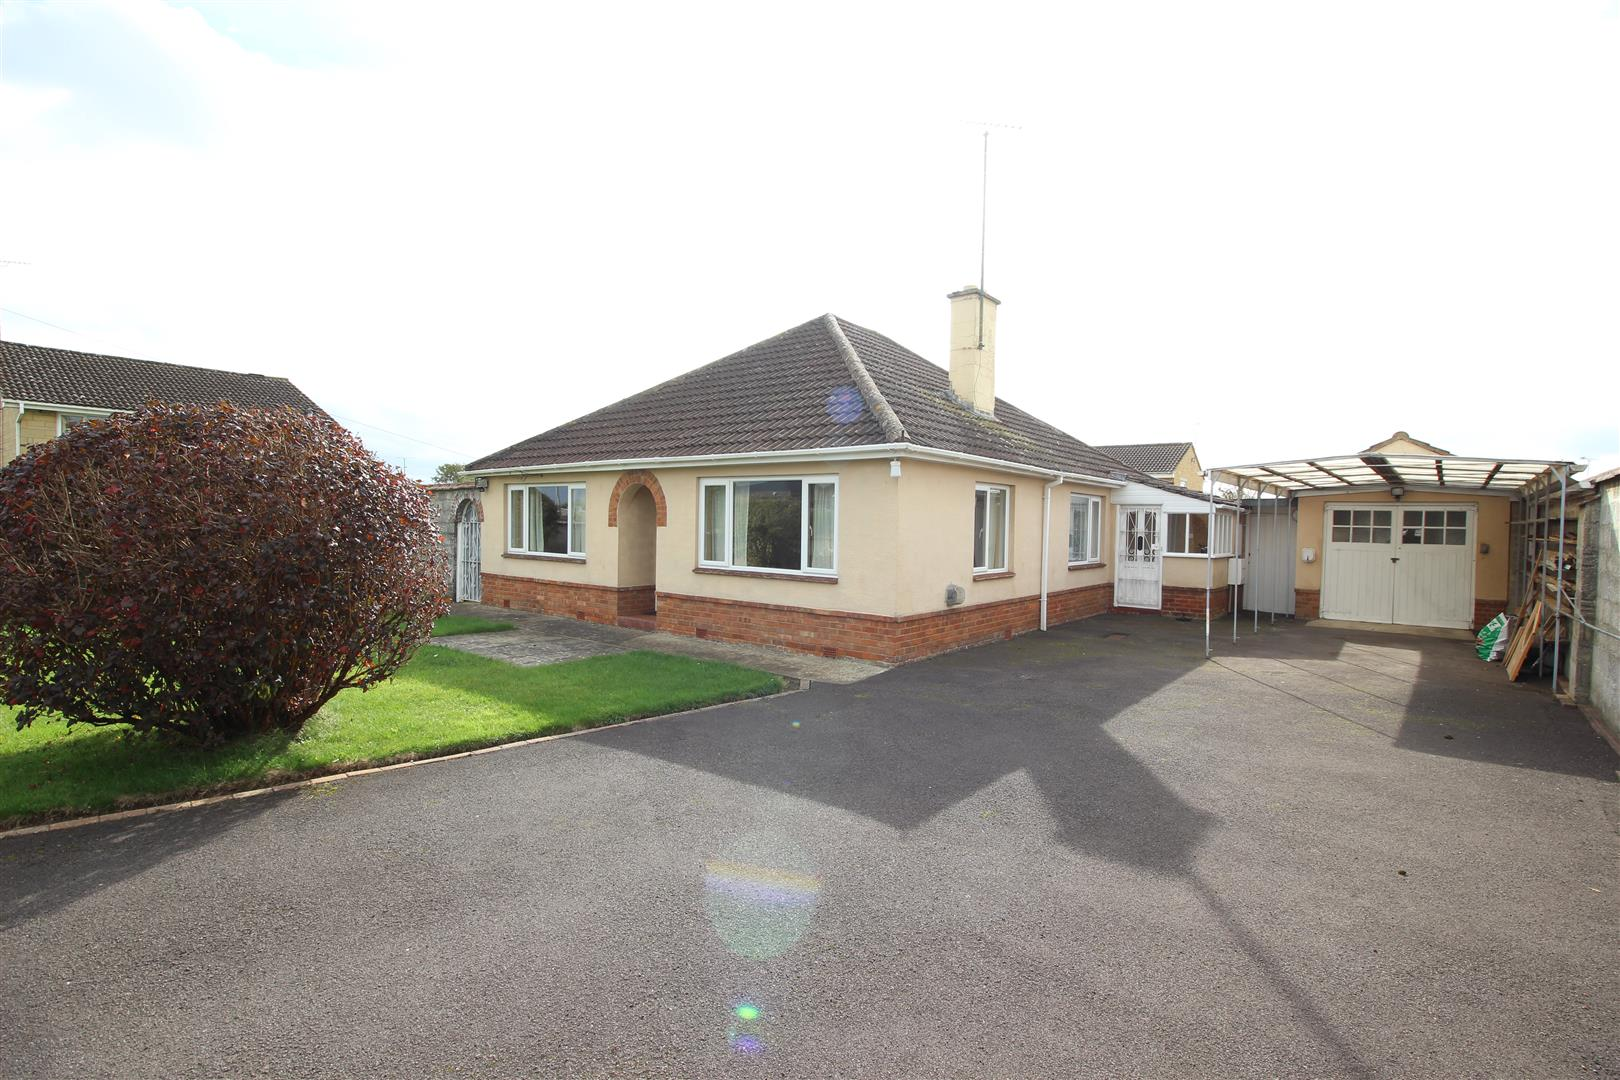 3 Bedrooms Bungalow for sale in Frogwell, Chippenham